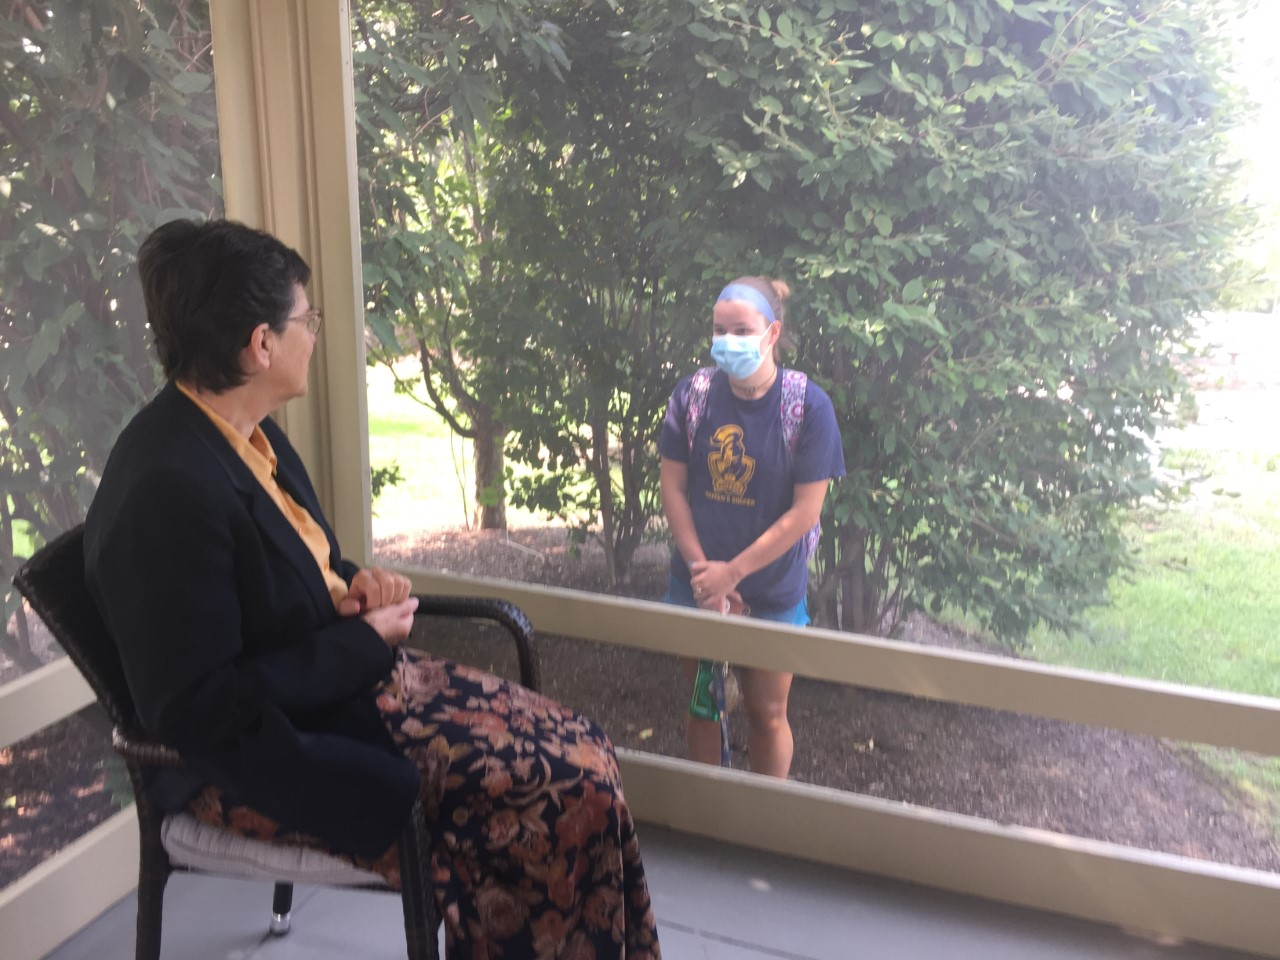 Neumann University Sisters Offer Prayers From the Porch